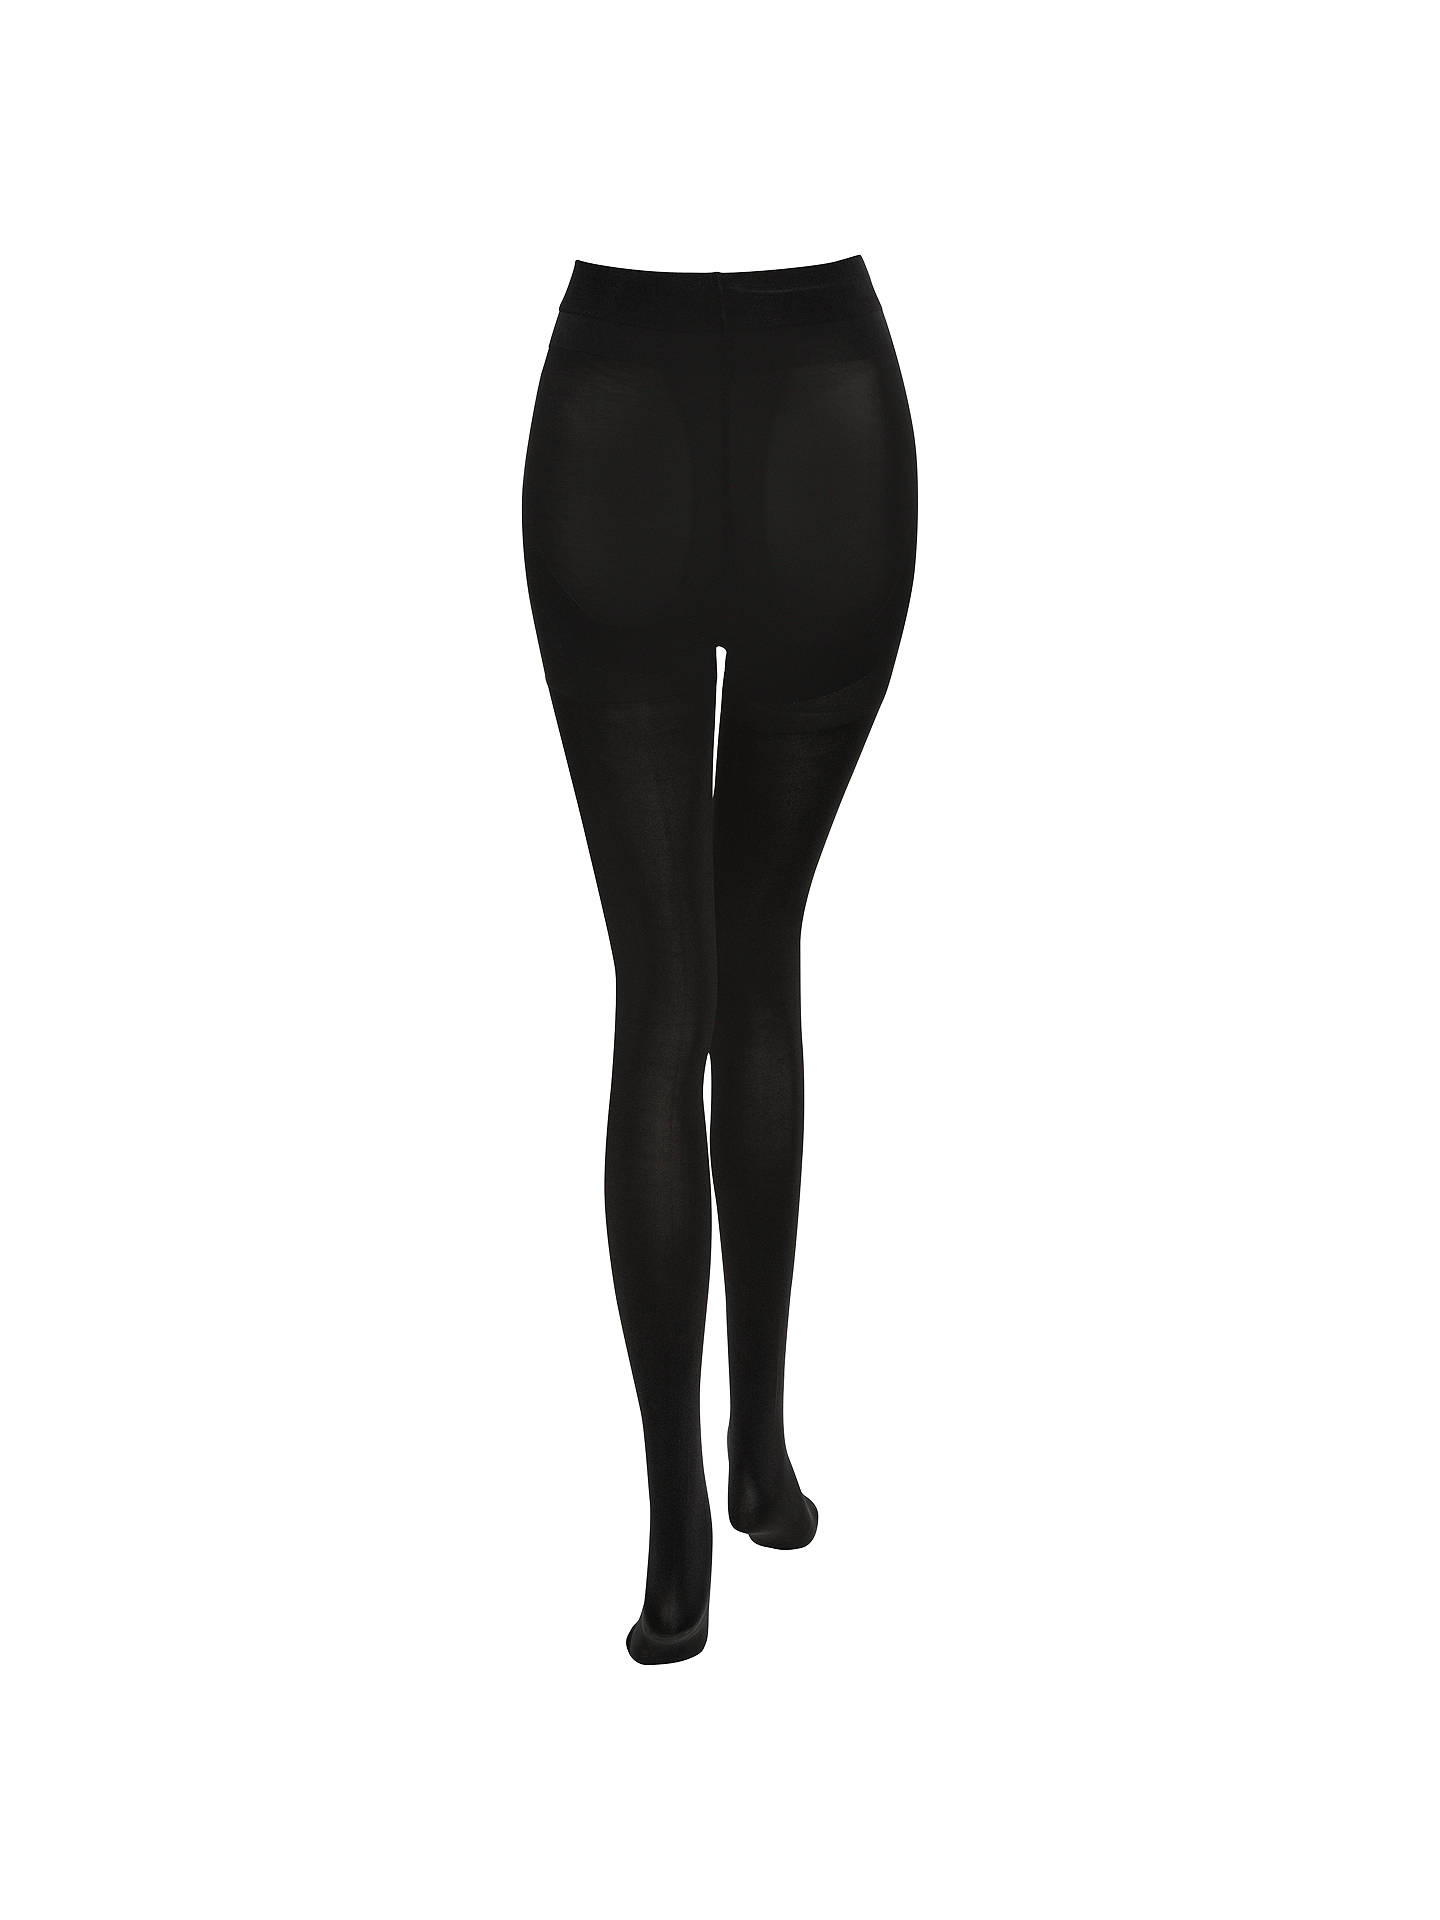 a9f65c0f82 ... BuyJohn Lewis   Partners 100 Denier Bodyshaper Opaque Tights